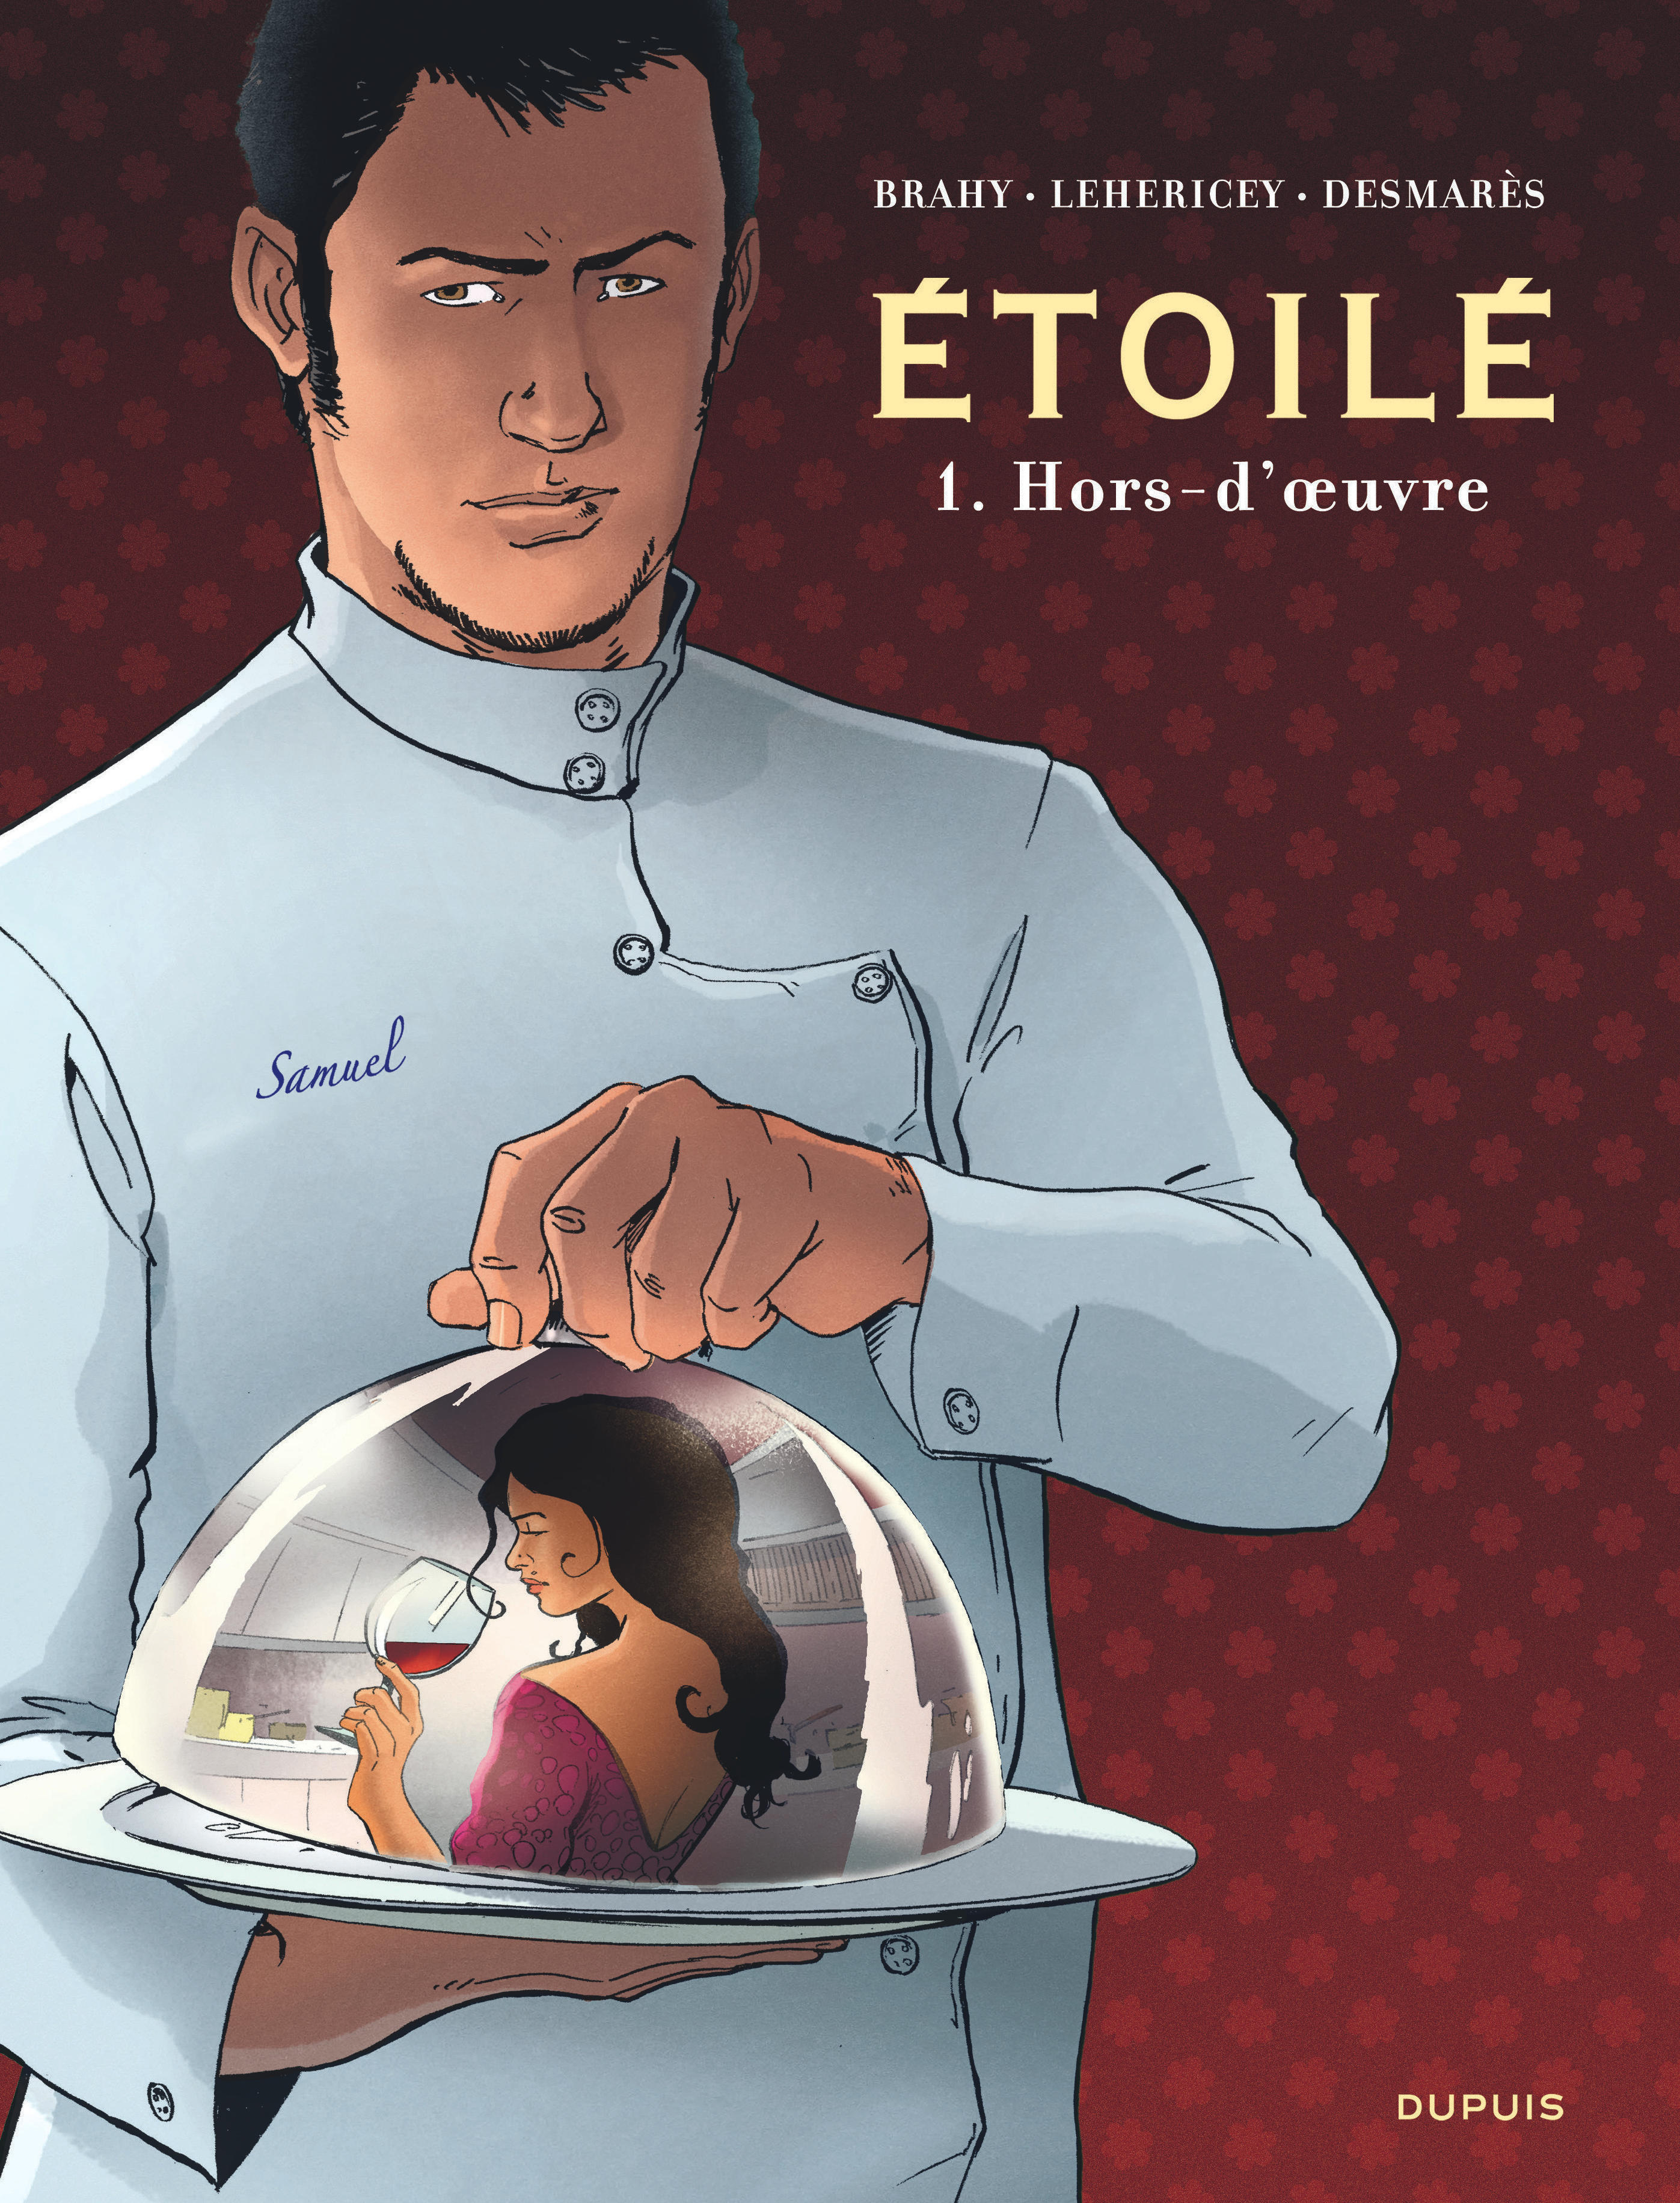 ETOILES T1 ETOILE - TOME 1 - HORS-D'OEUVRE